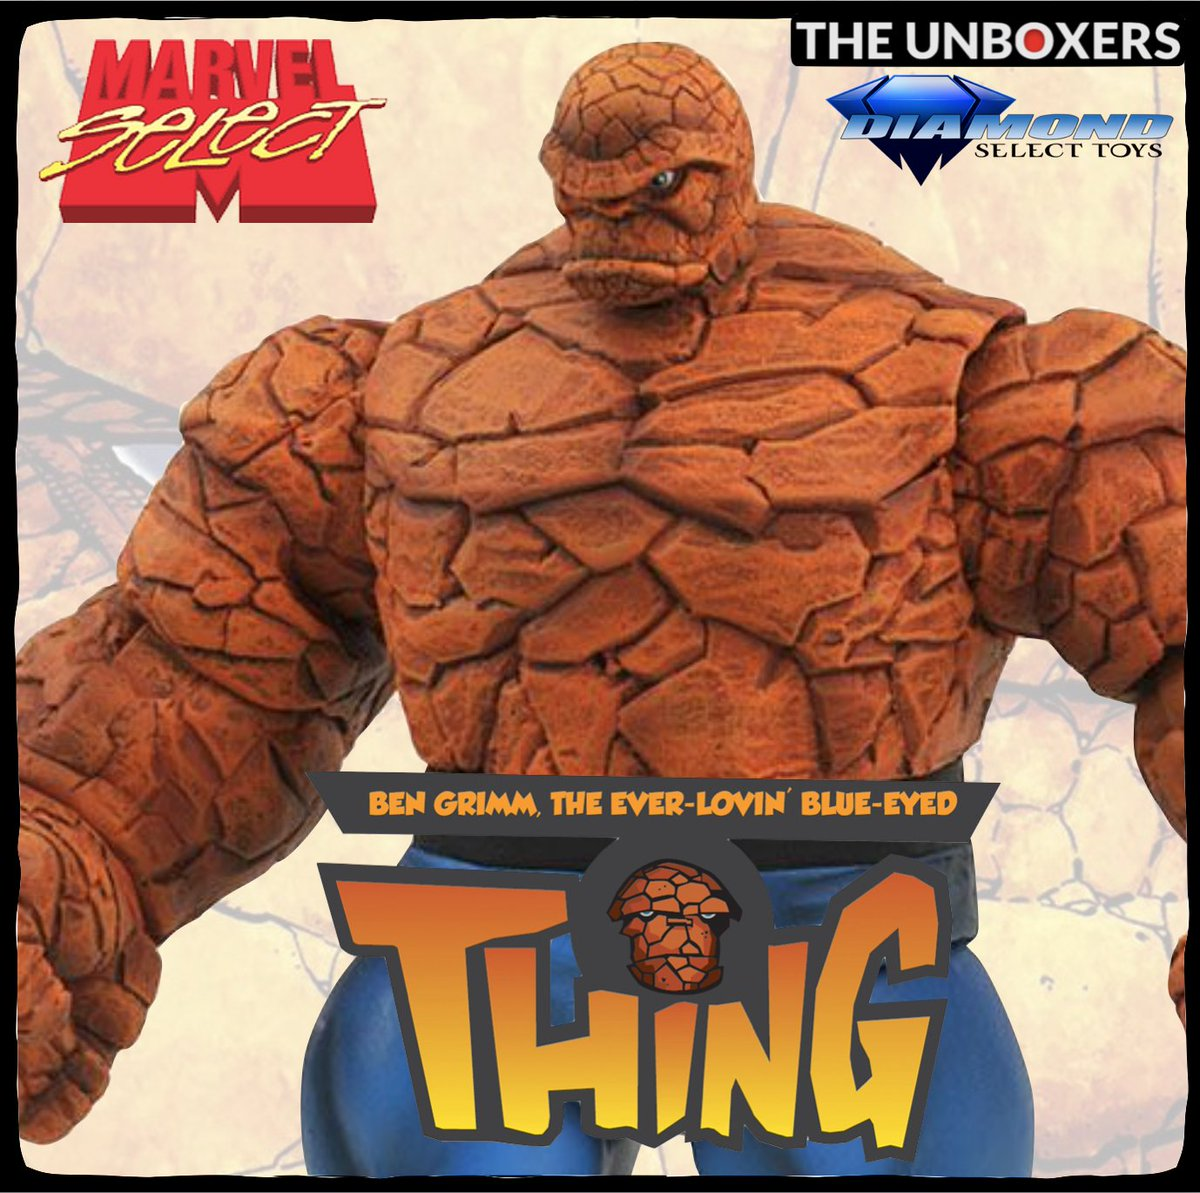 It's Clobberin' Time! Yake a look at The Thing Marvel Select Action Figure from our friends at @collectdst    Be sure to👍& #subscribe   #ad #Marvel #FantasticFour #TheThing #DiamondSelect #YouTuber #unboxing #toys #toyphotography #ICYMI #fun #actionfigures